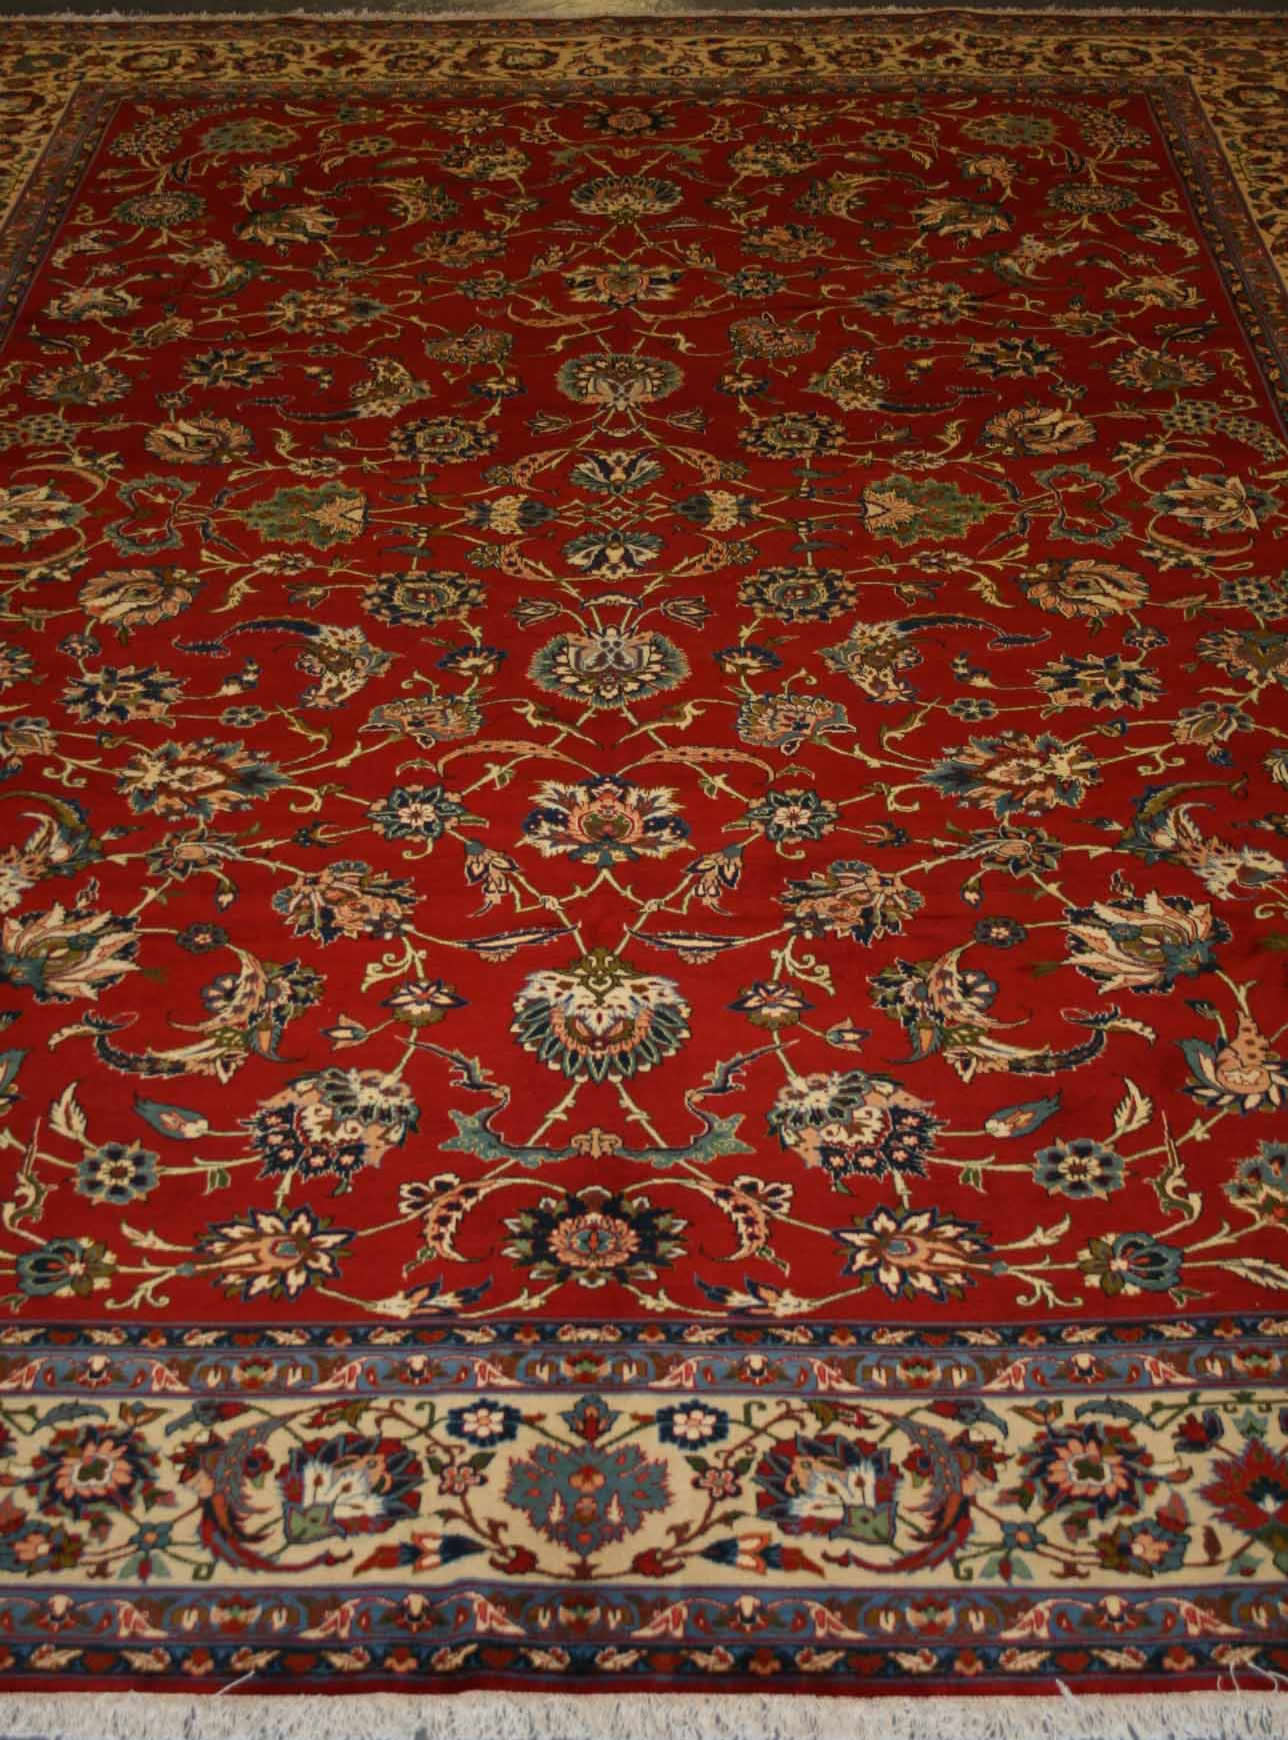 Najafabad Rug Origin And Description Guide